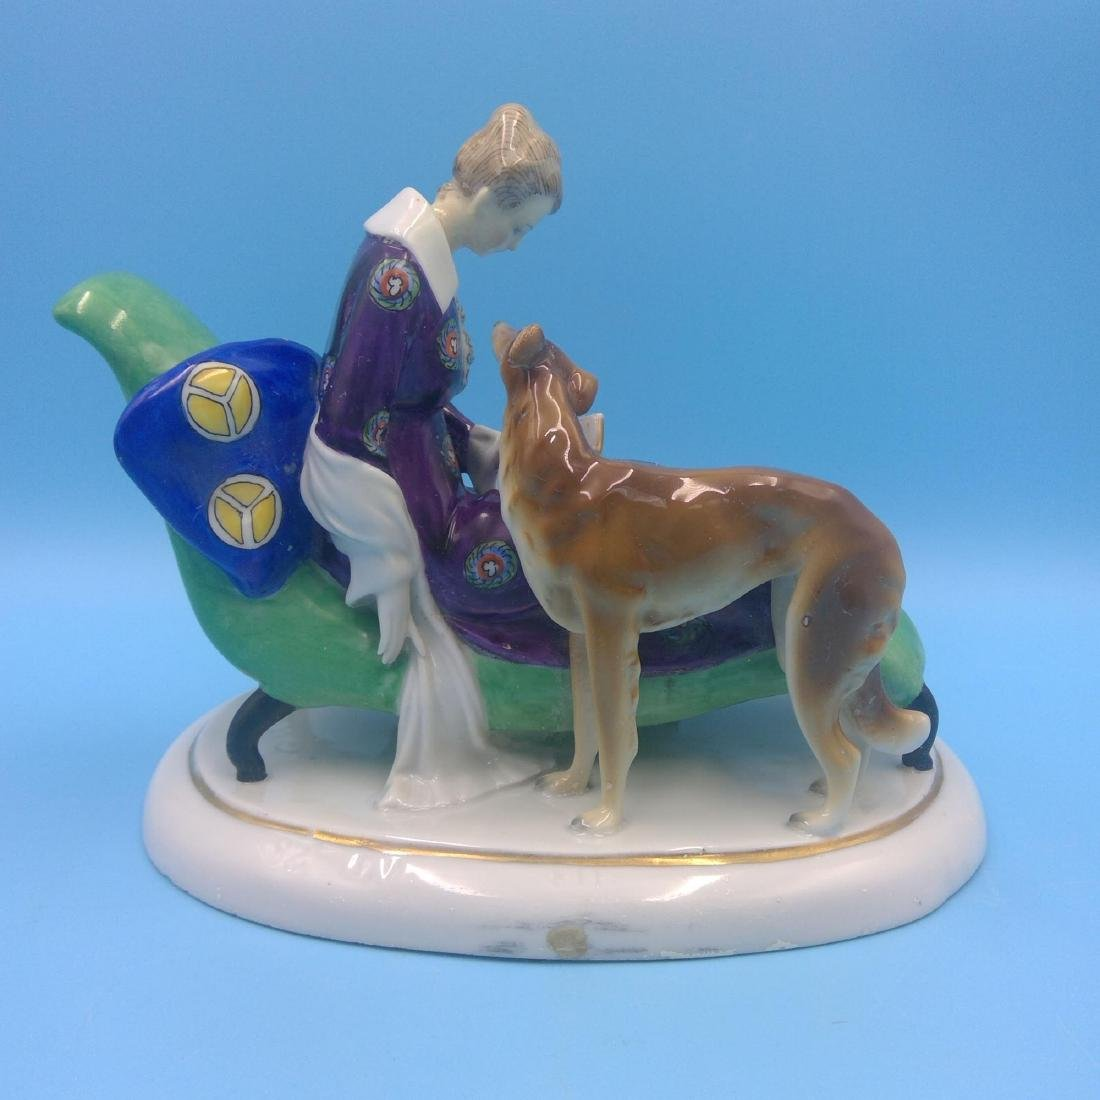 GOEBEL ART DECO GERMAN PORCELAIN FIGURINE - 3